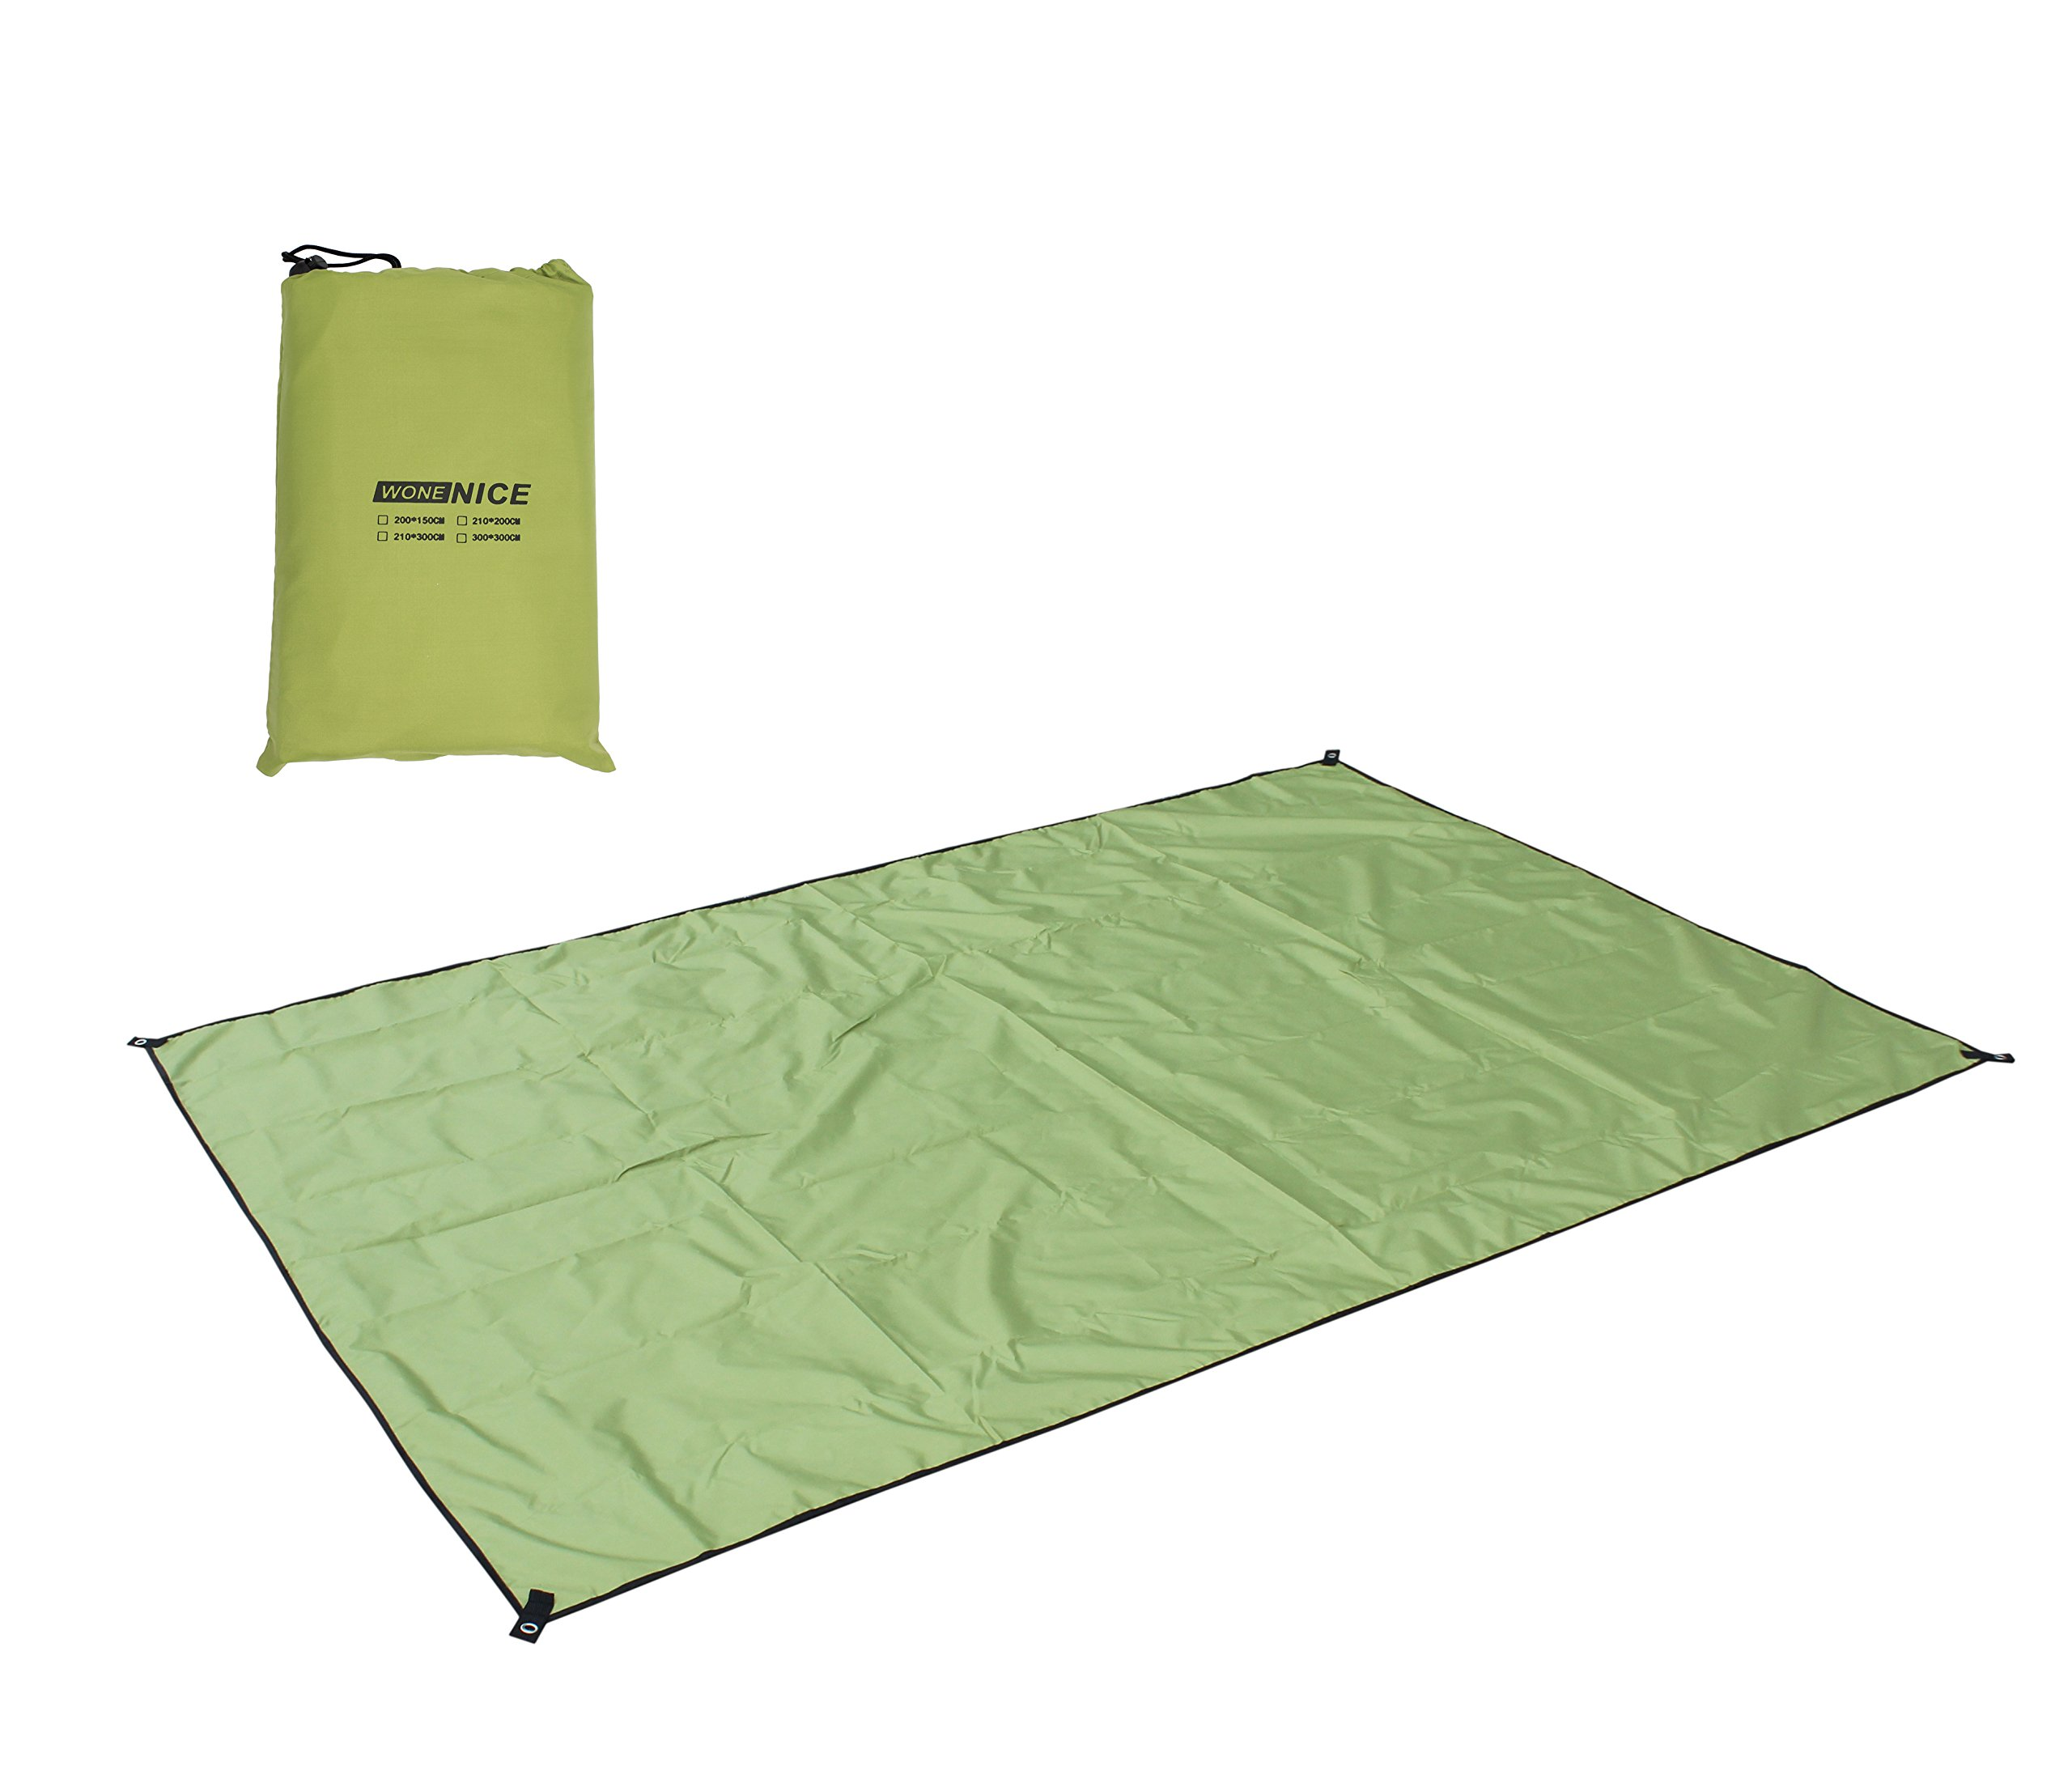 WoneNice Waterproof Camping Tent Footprint, Tent Mat, Tent Tarp, Sand Free Beach Mat Blanket and Ground Mat for Picnic, Camping, Hiking118 x 118 inches by WoneNice